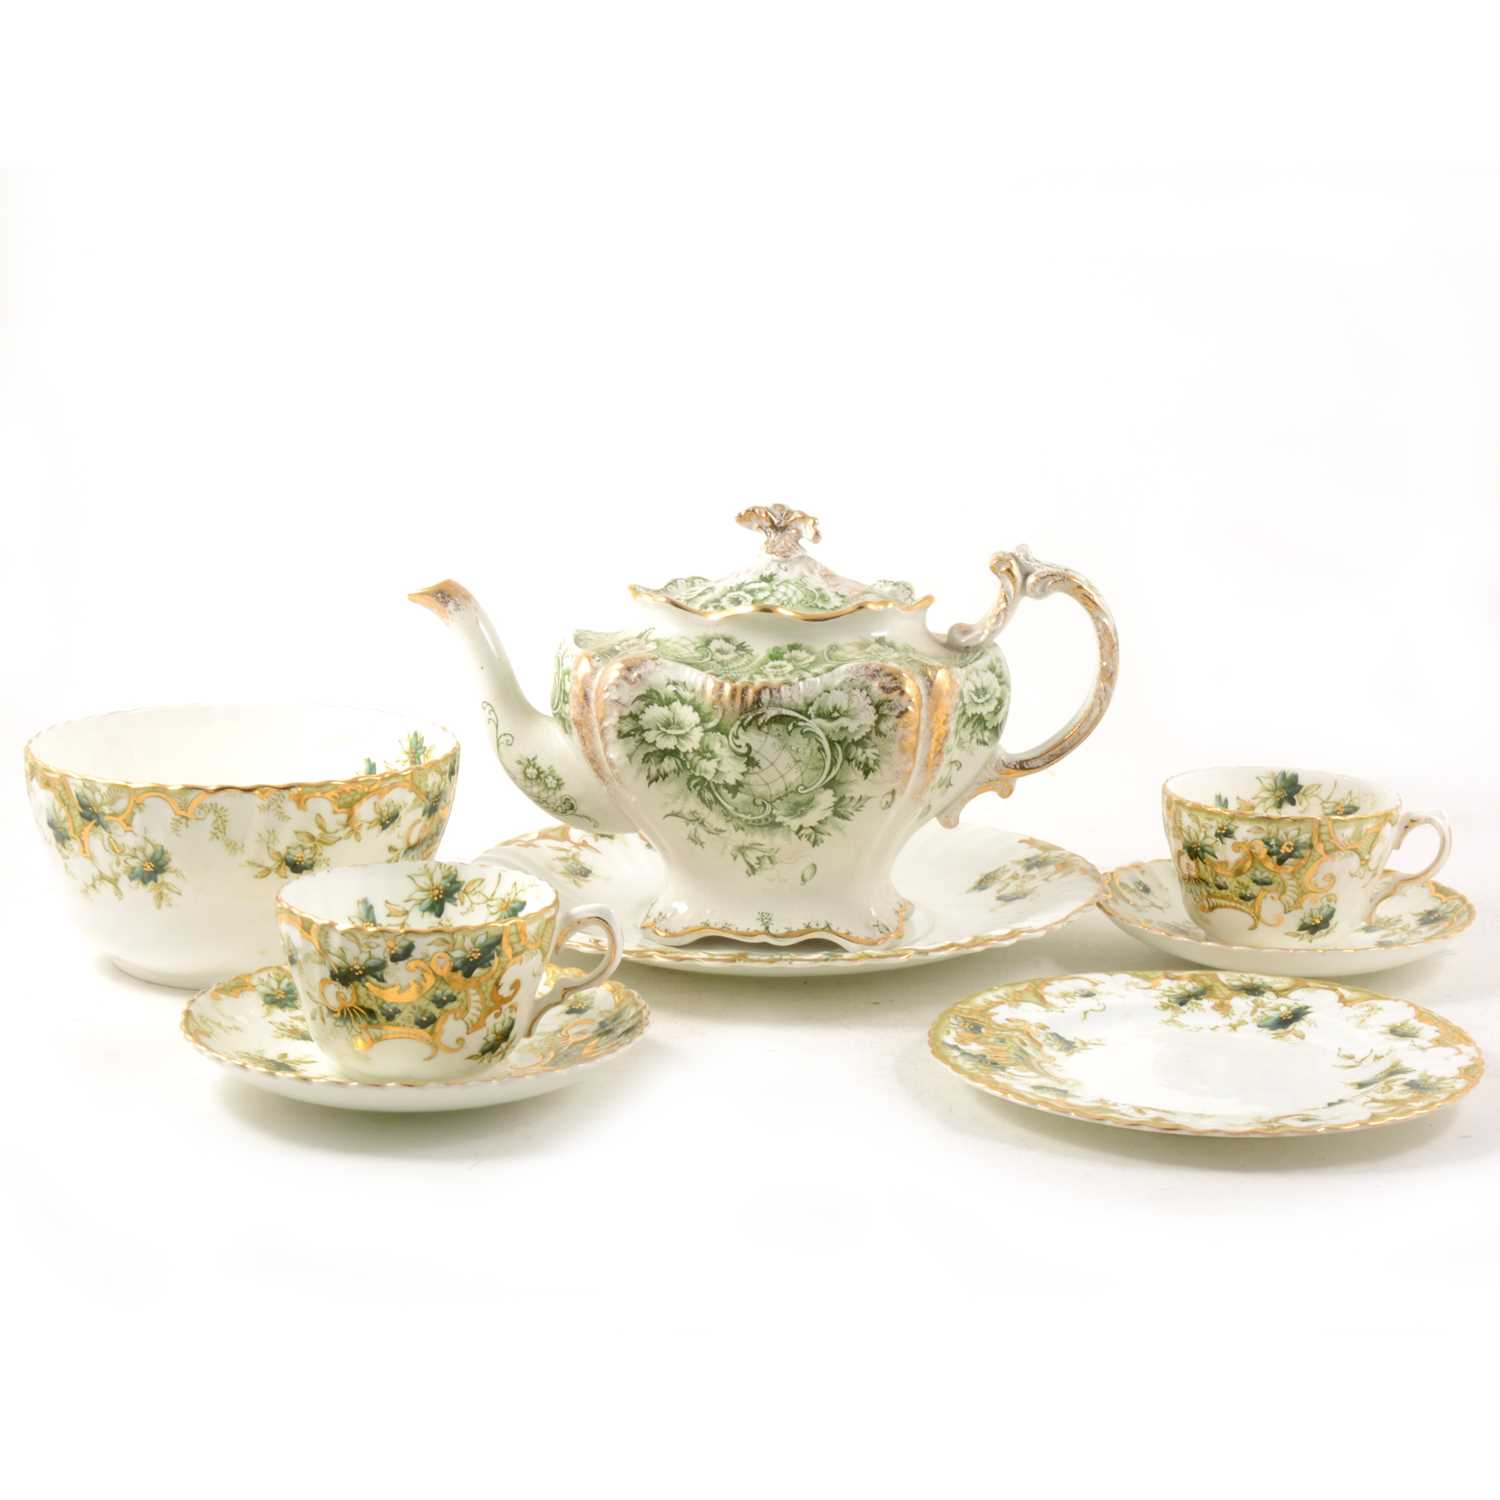 Lot 31-A late 19th century Staffordshire tea service